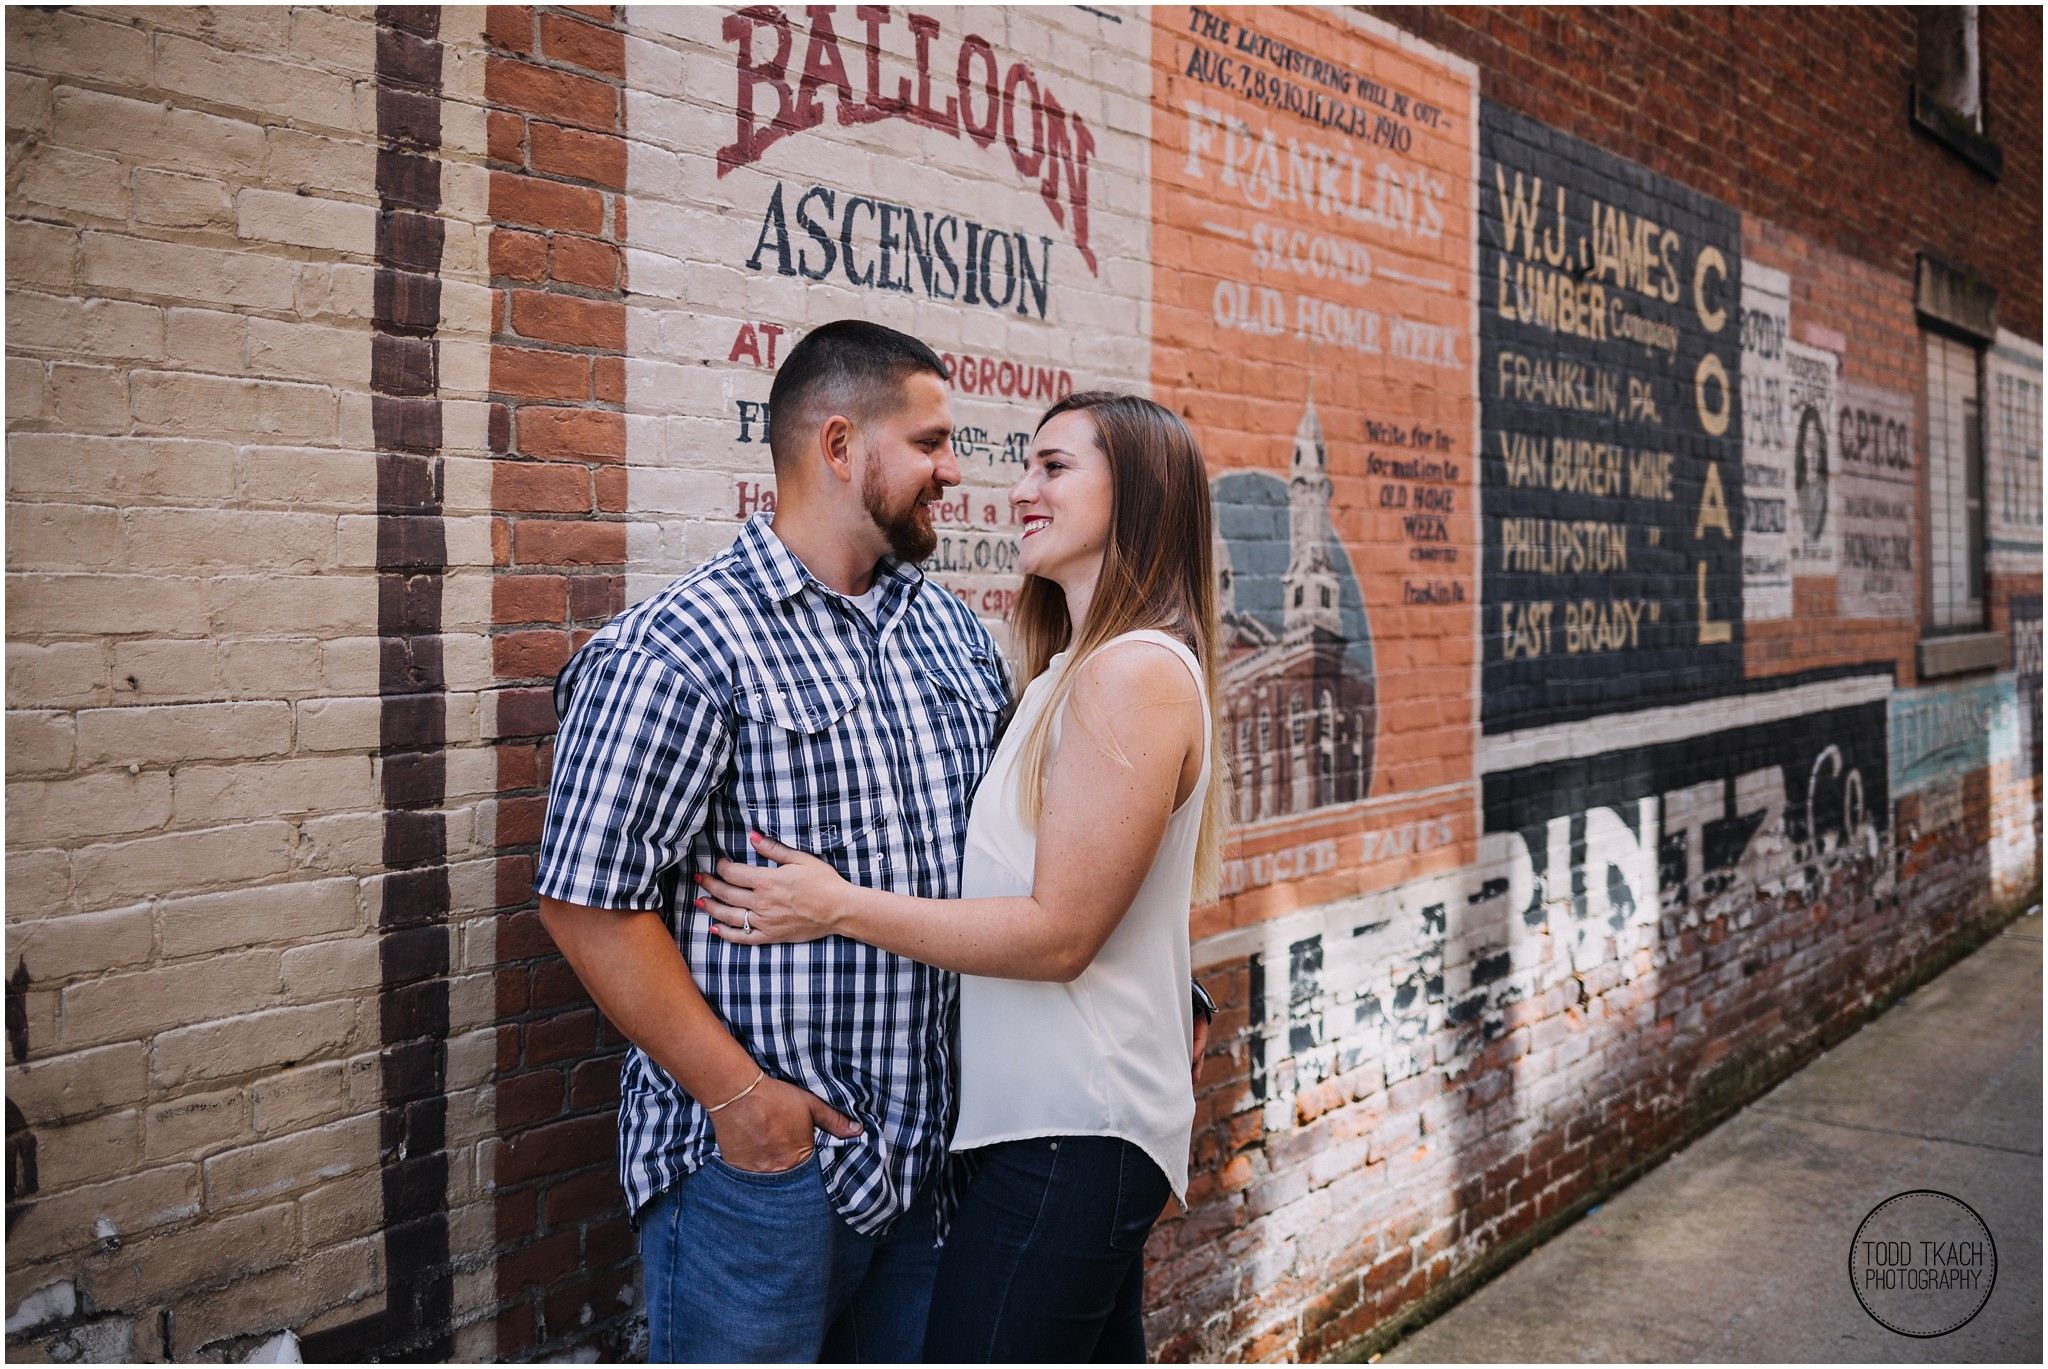 Kim & Brandon Engagement - Old Time Billboard Gaze Into Eyes Portrait